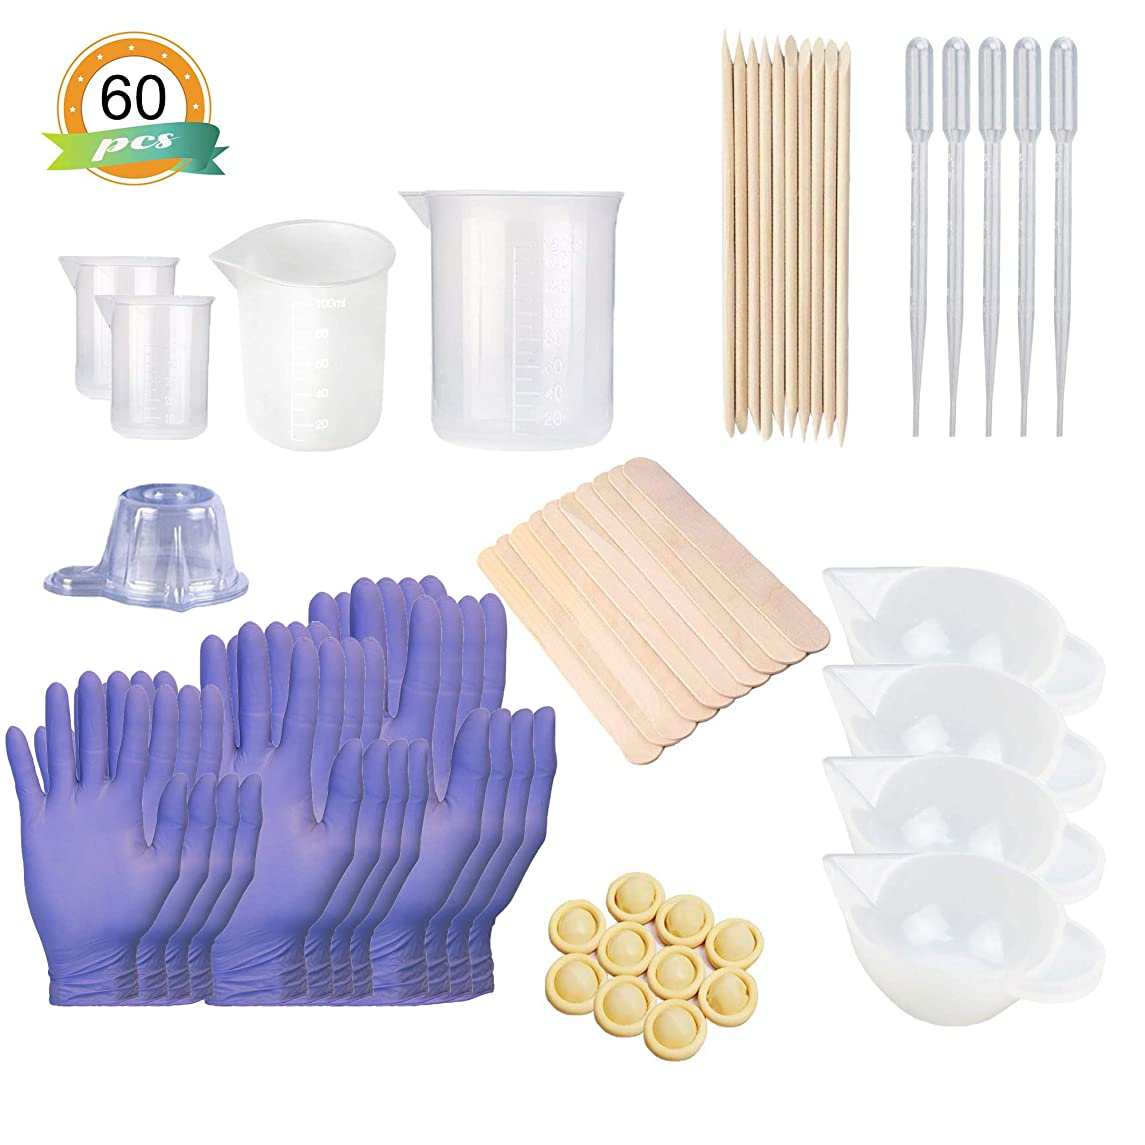 Silicone Mixing Cups Tool Sets - 4everjw Silicone Measuring Cups - Epoxy Resin Mixing Cups - Silicone Mat - Silicone Stir Stick - Plastic Transfer Pipettes - Finger Cots, Epoxy Resin, Rubber Gloves